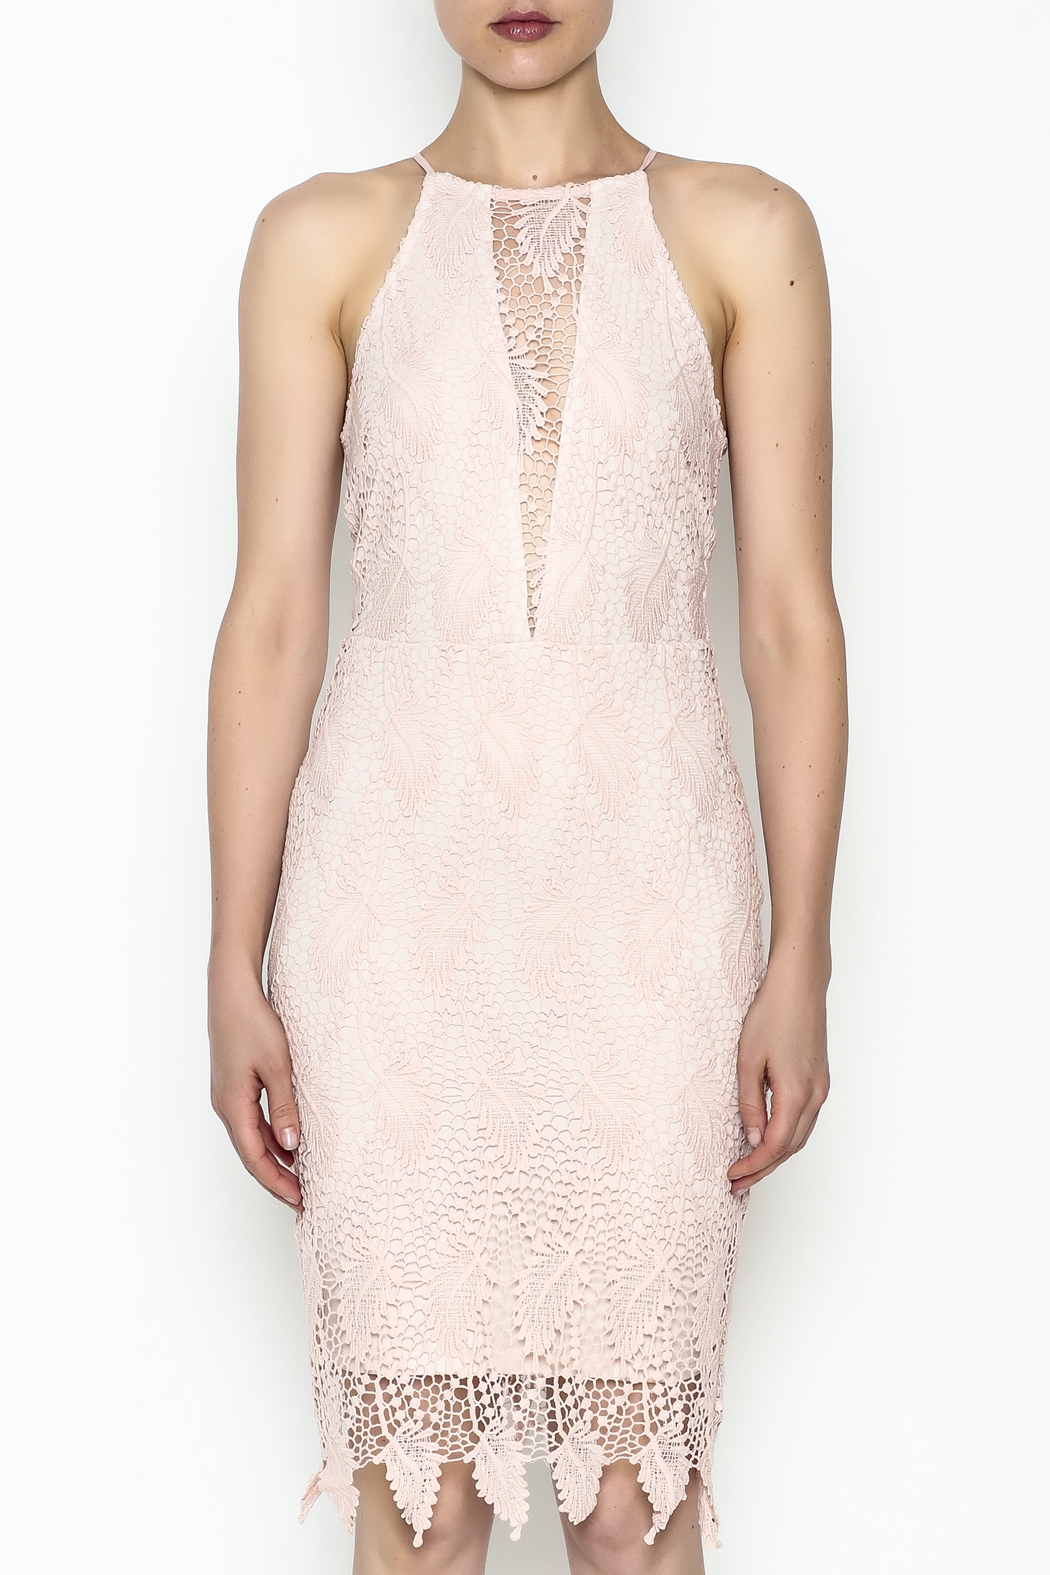 Ark & Co. Lace Bodycon Dress - Front Full Image